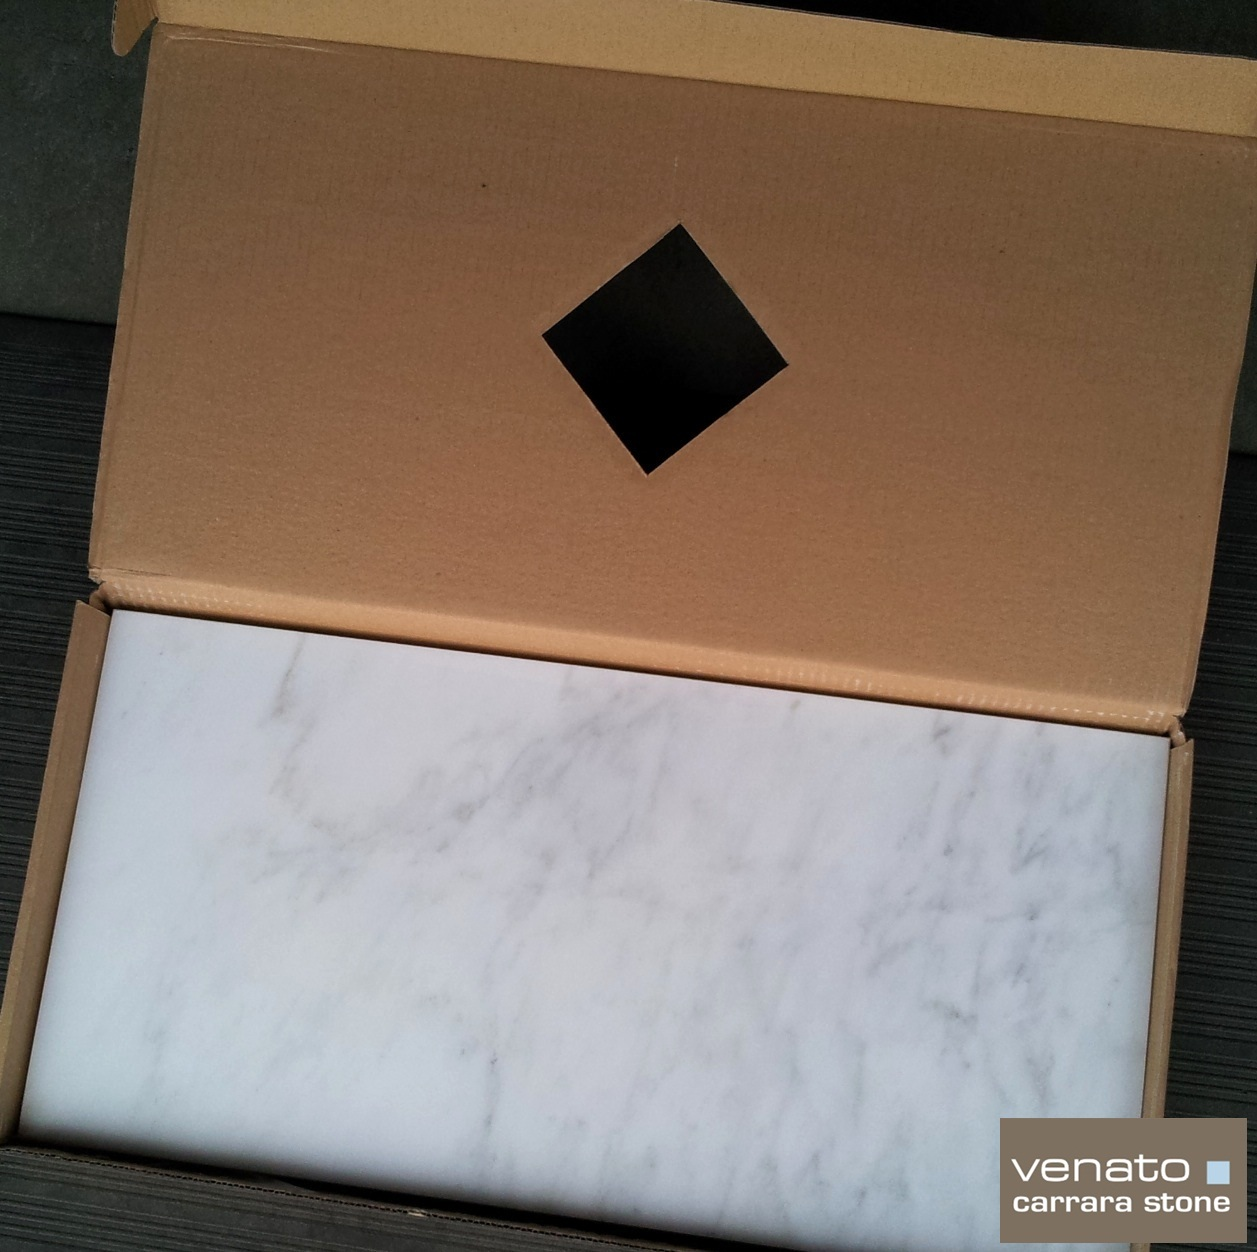 12x24 Box Carrara Venato